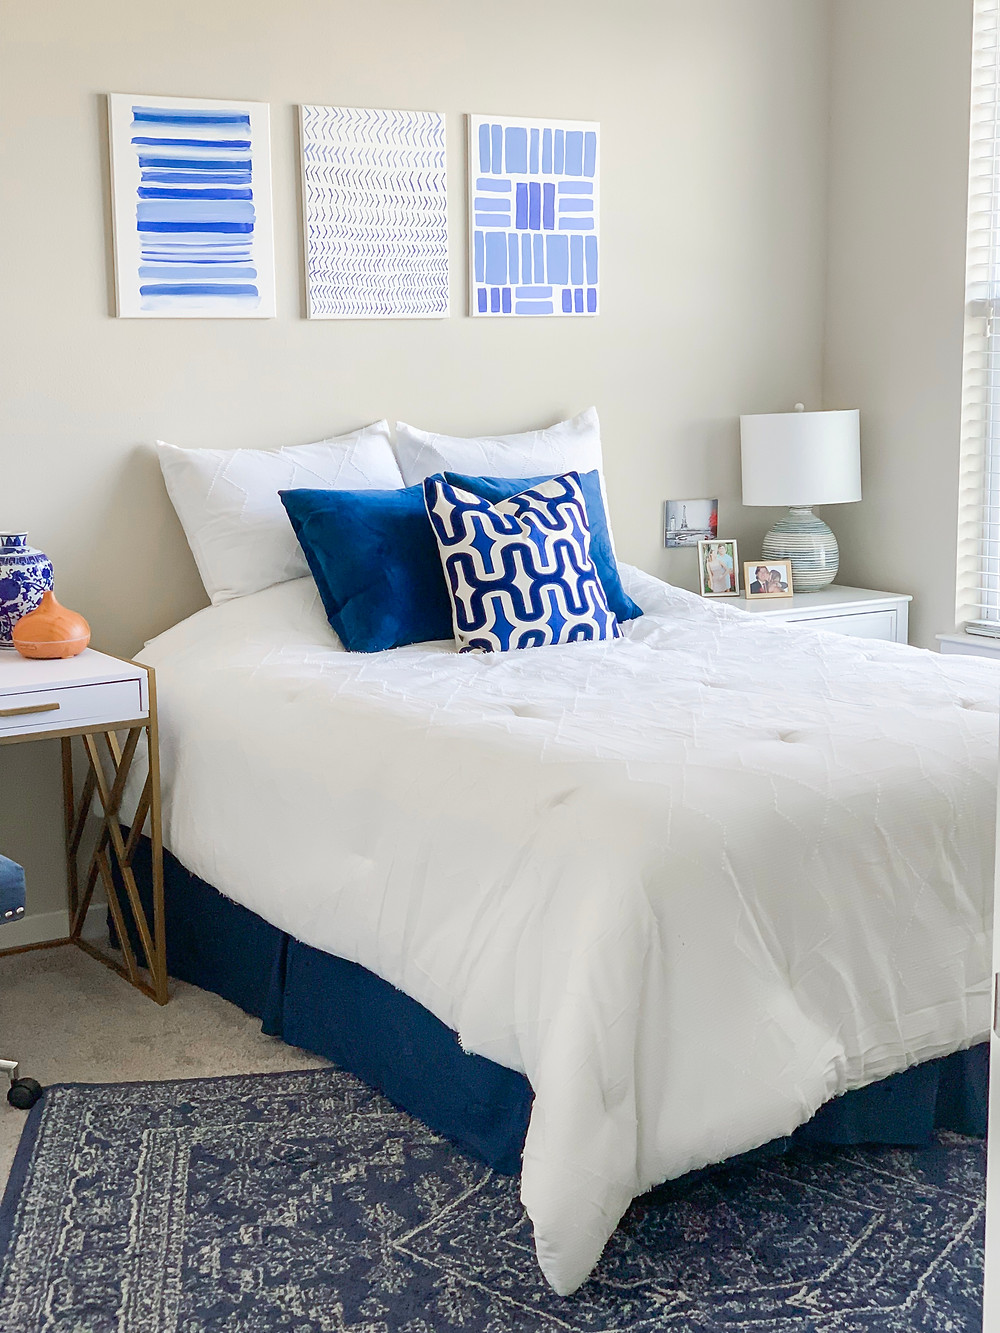 apartment decor, home decor, bedroom decor, blue and white bedroom